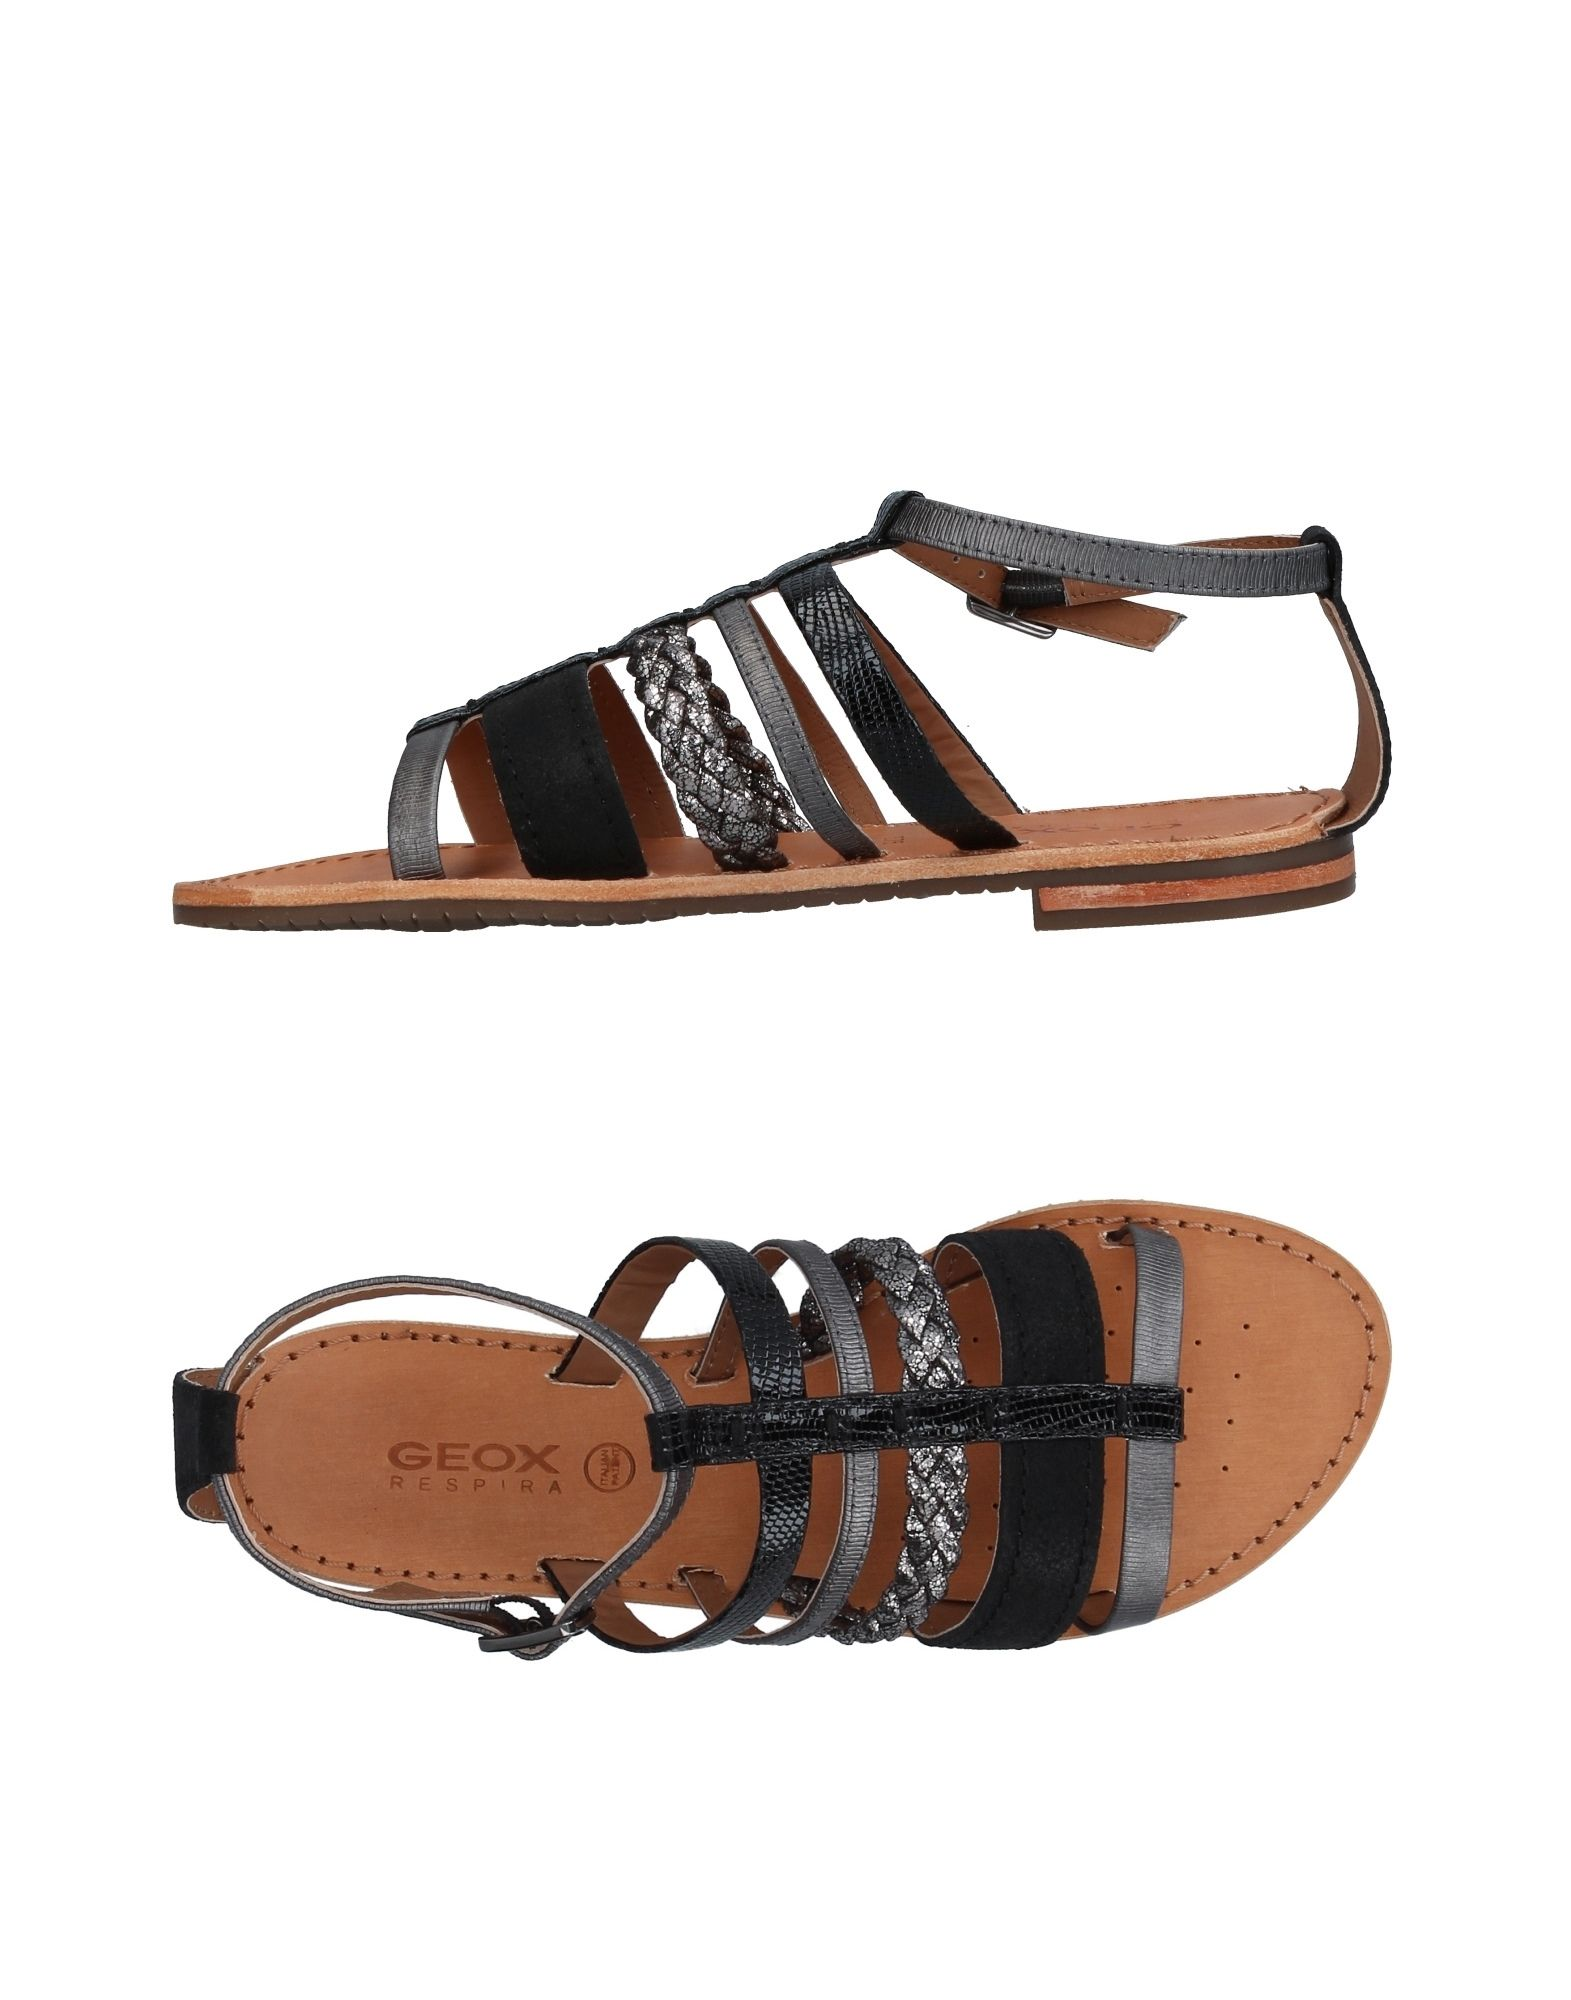 Geox Sandals - Women Geox Sandals on online on Sandals  United Kingdom - 11393250AG 698390